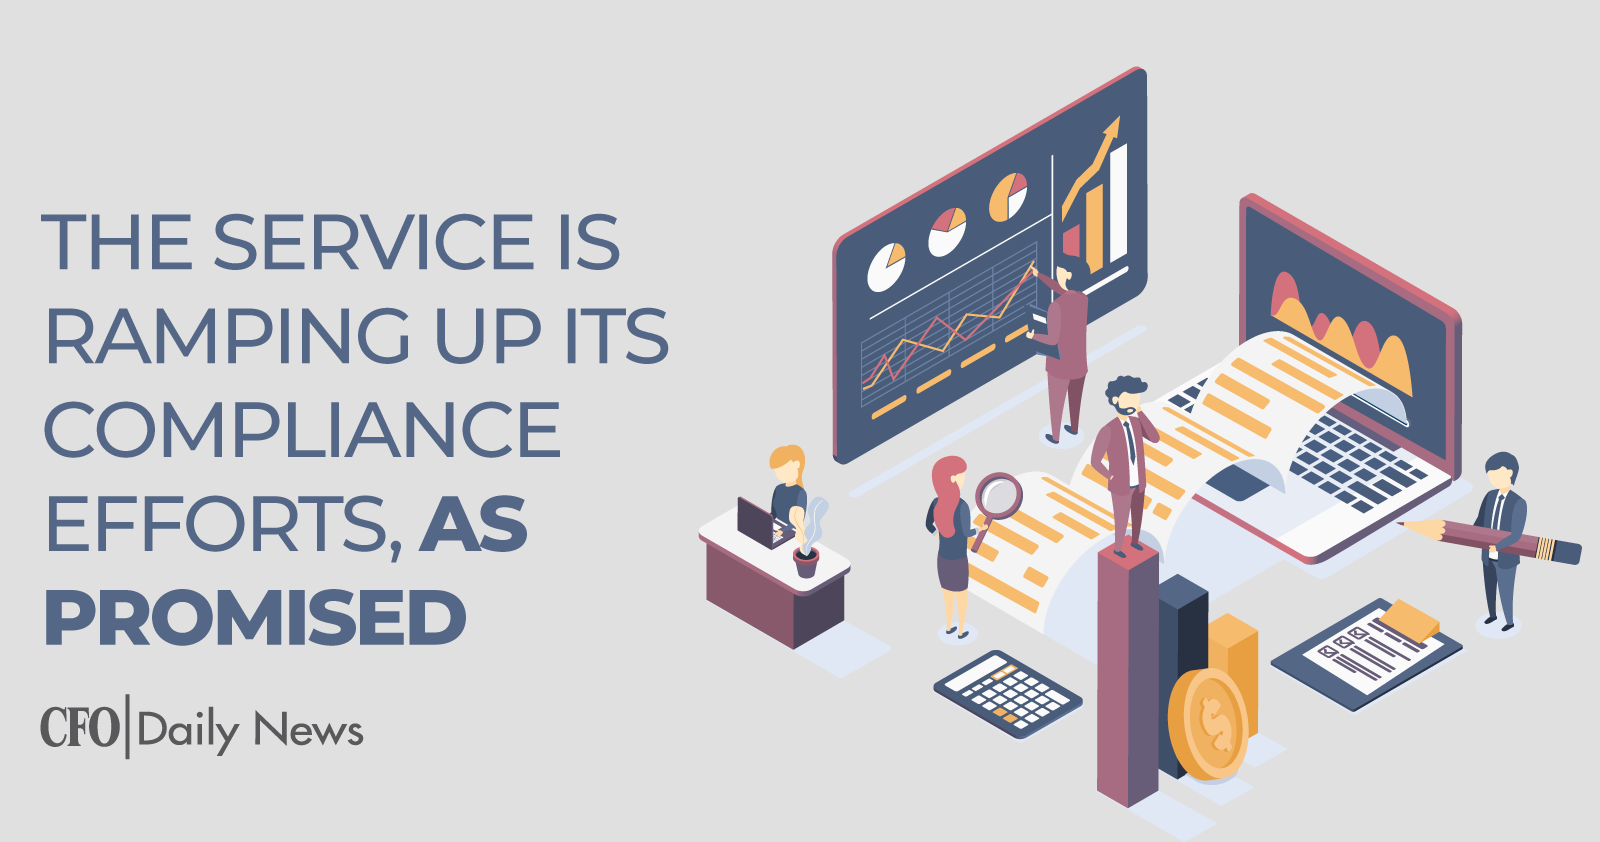 The Service Is Ramping Up Its Compliance Efforts As Promised